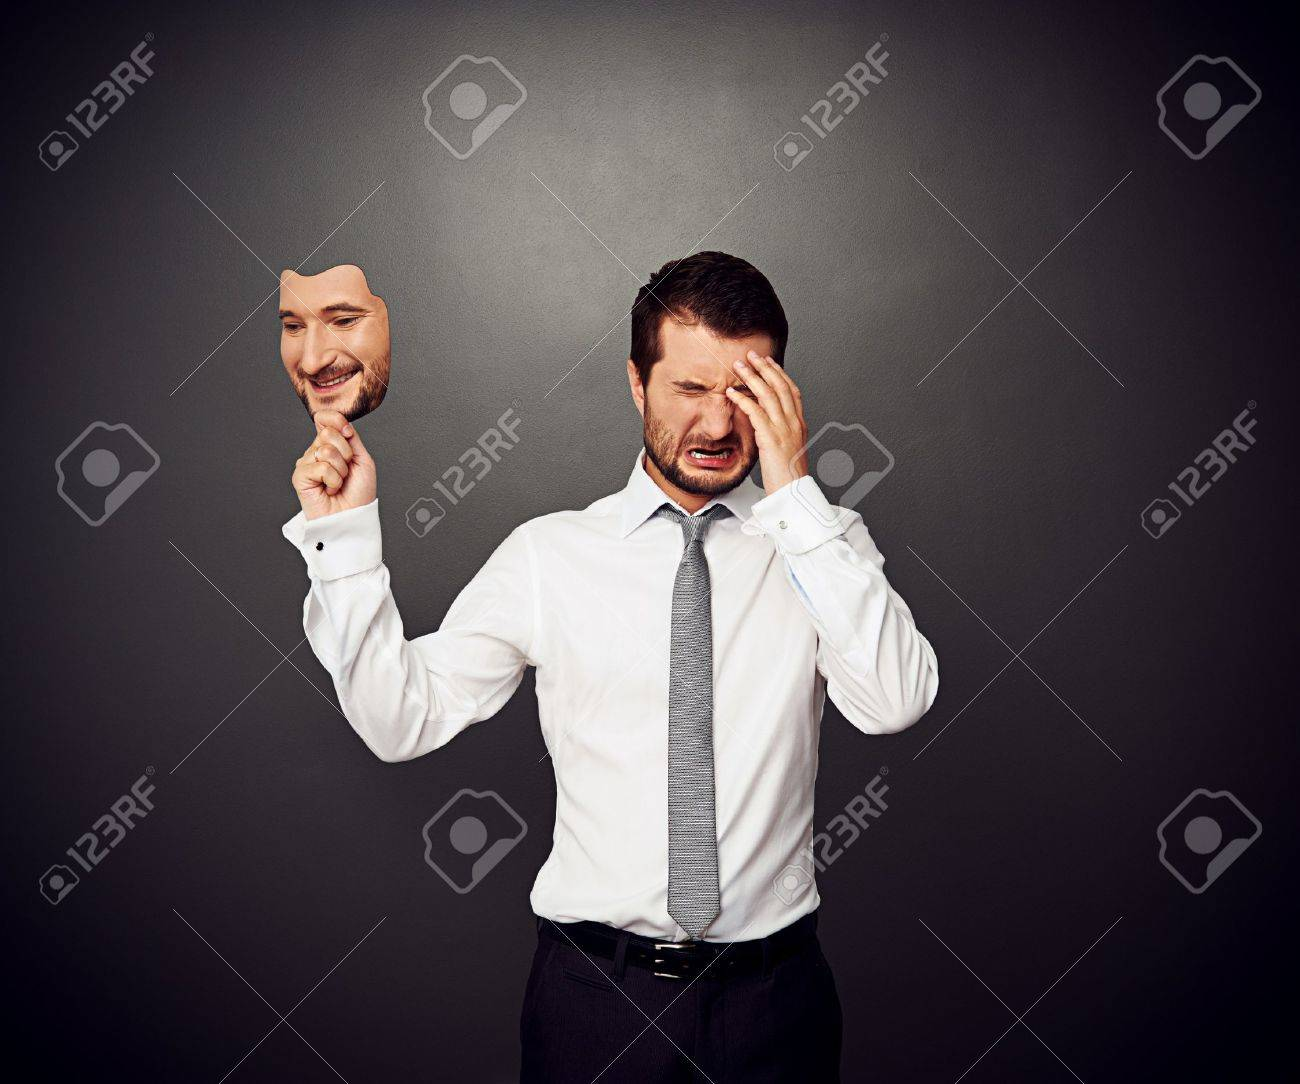 crying man holding mask with smiley face Stock Photo - 20019909